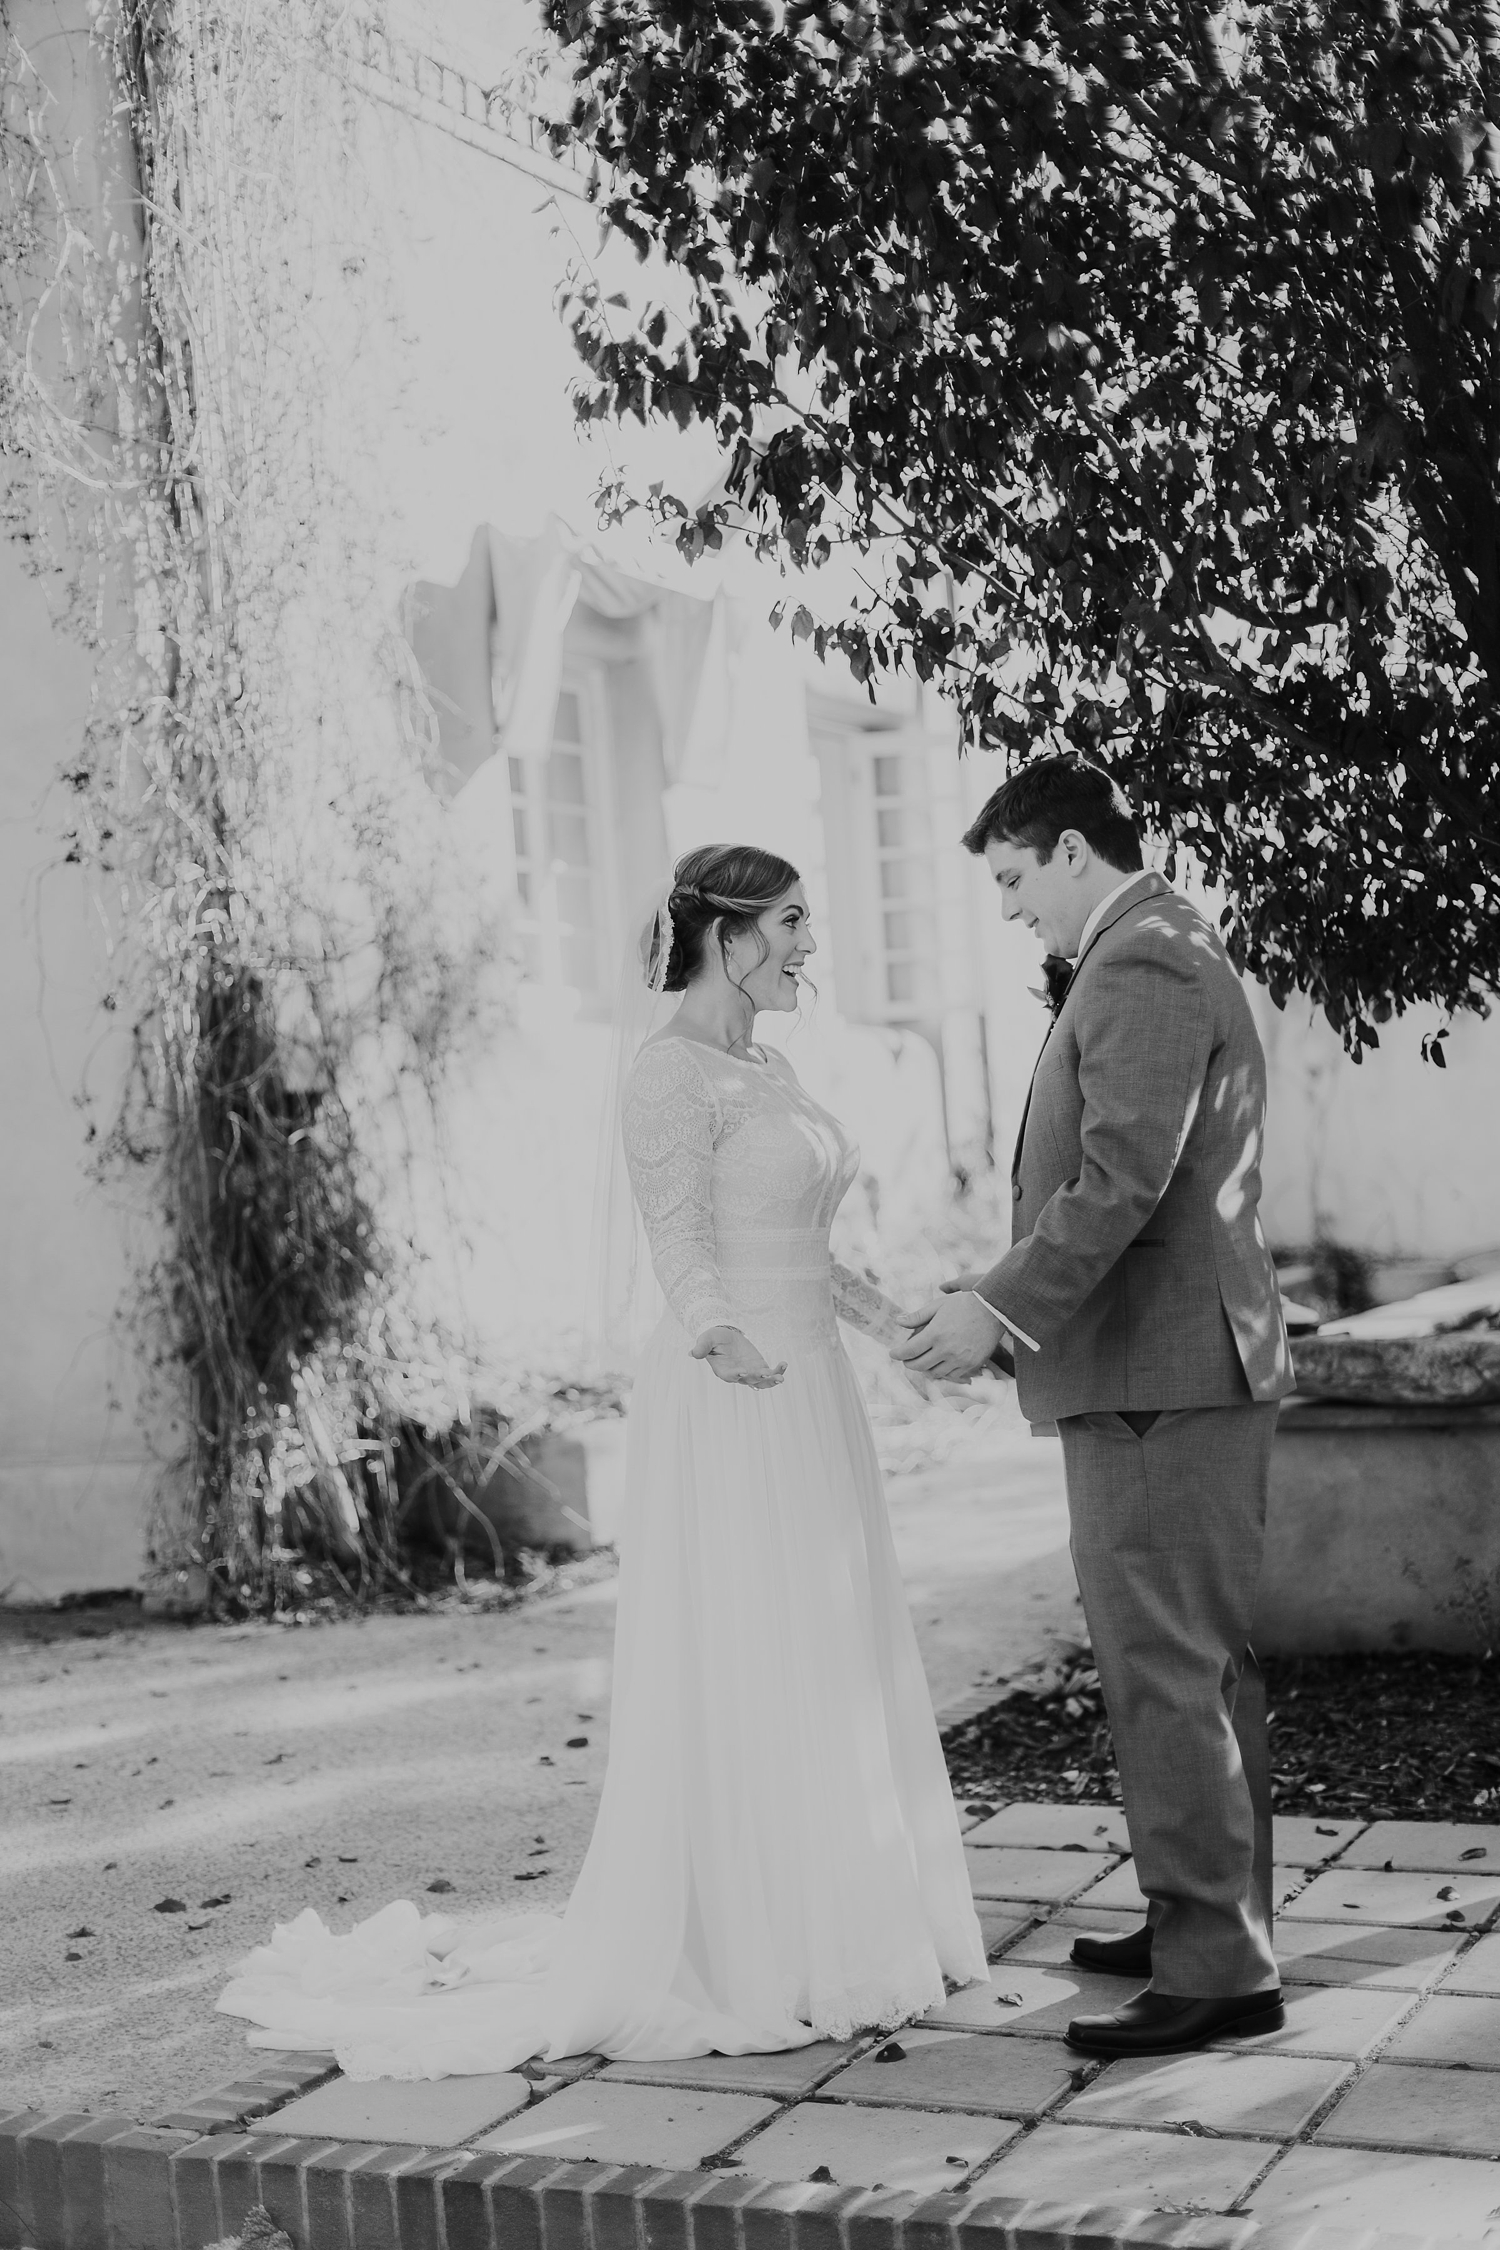 Alicia+lucia+photography+-+albuquerque+wedding+photographer+-+santa+fe+wedding+photography+-+new+mexico+wedding+photographer+-+albuquerque+fall+wedding+-+los+poblanos+albuquerque+-+los+poblanos+wedding+-+los+poblanos+fall+wedding_0026.jpg